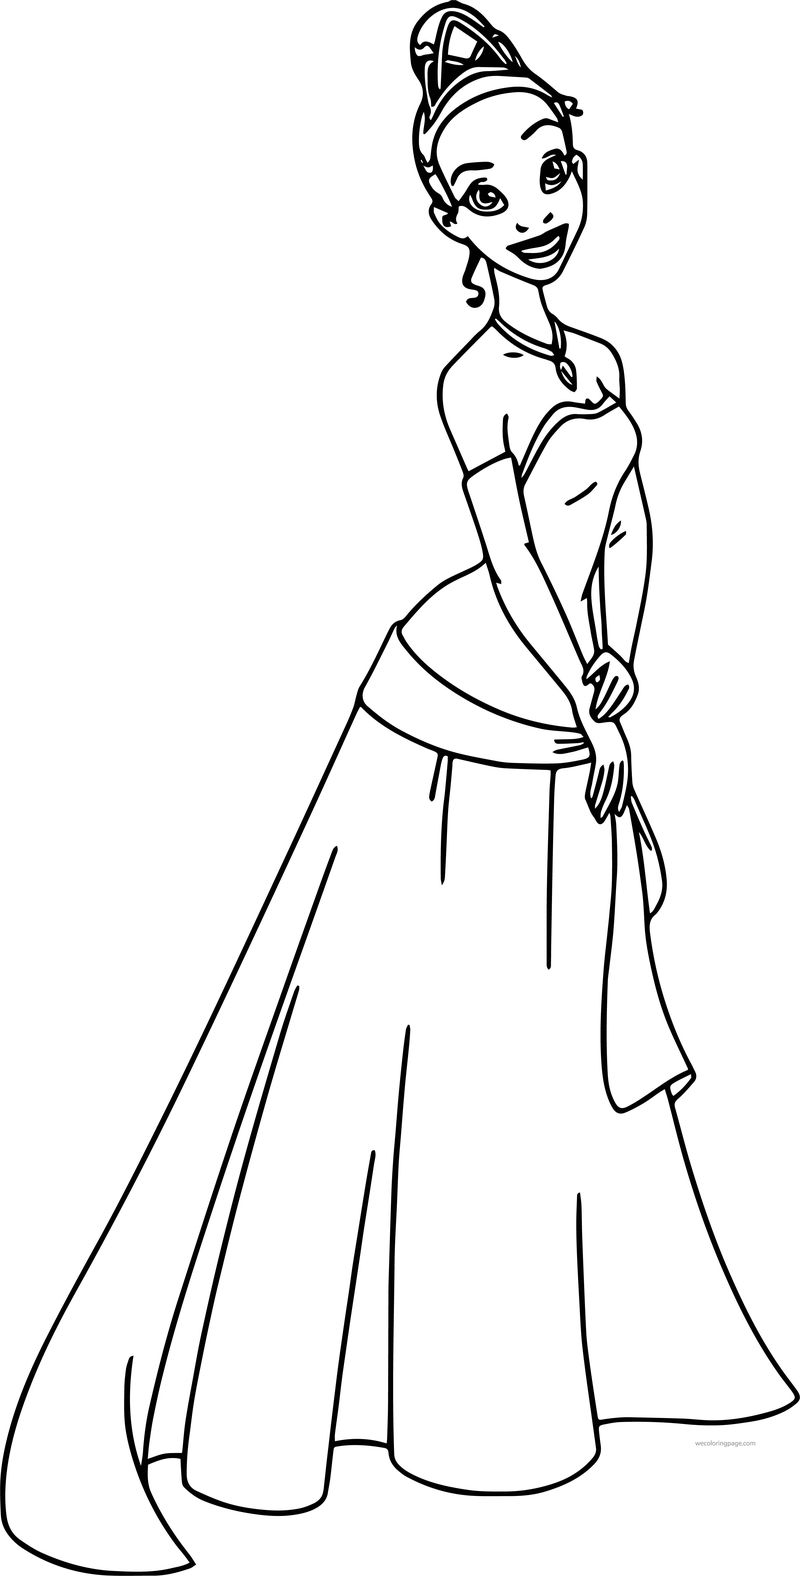 Disney The Princess And The Frog Beautiful Dress Tiana Coloring Page